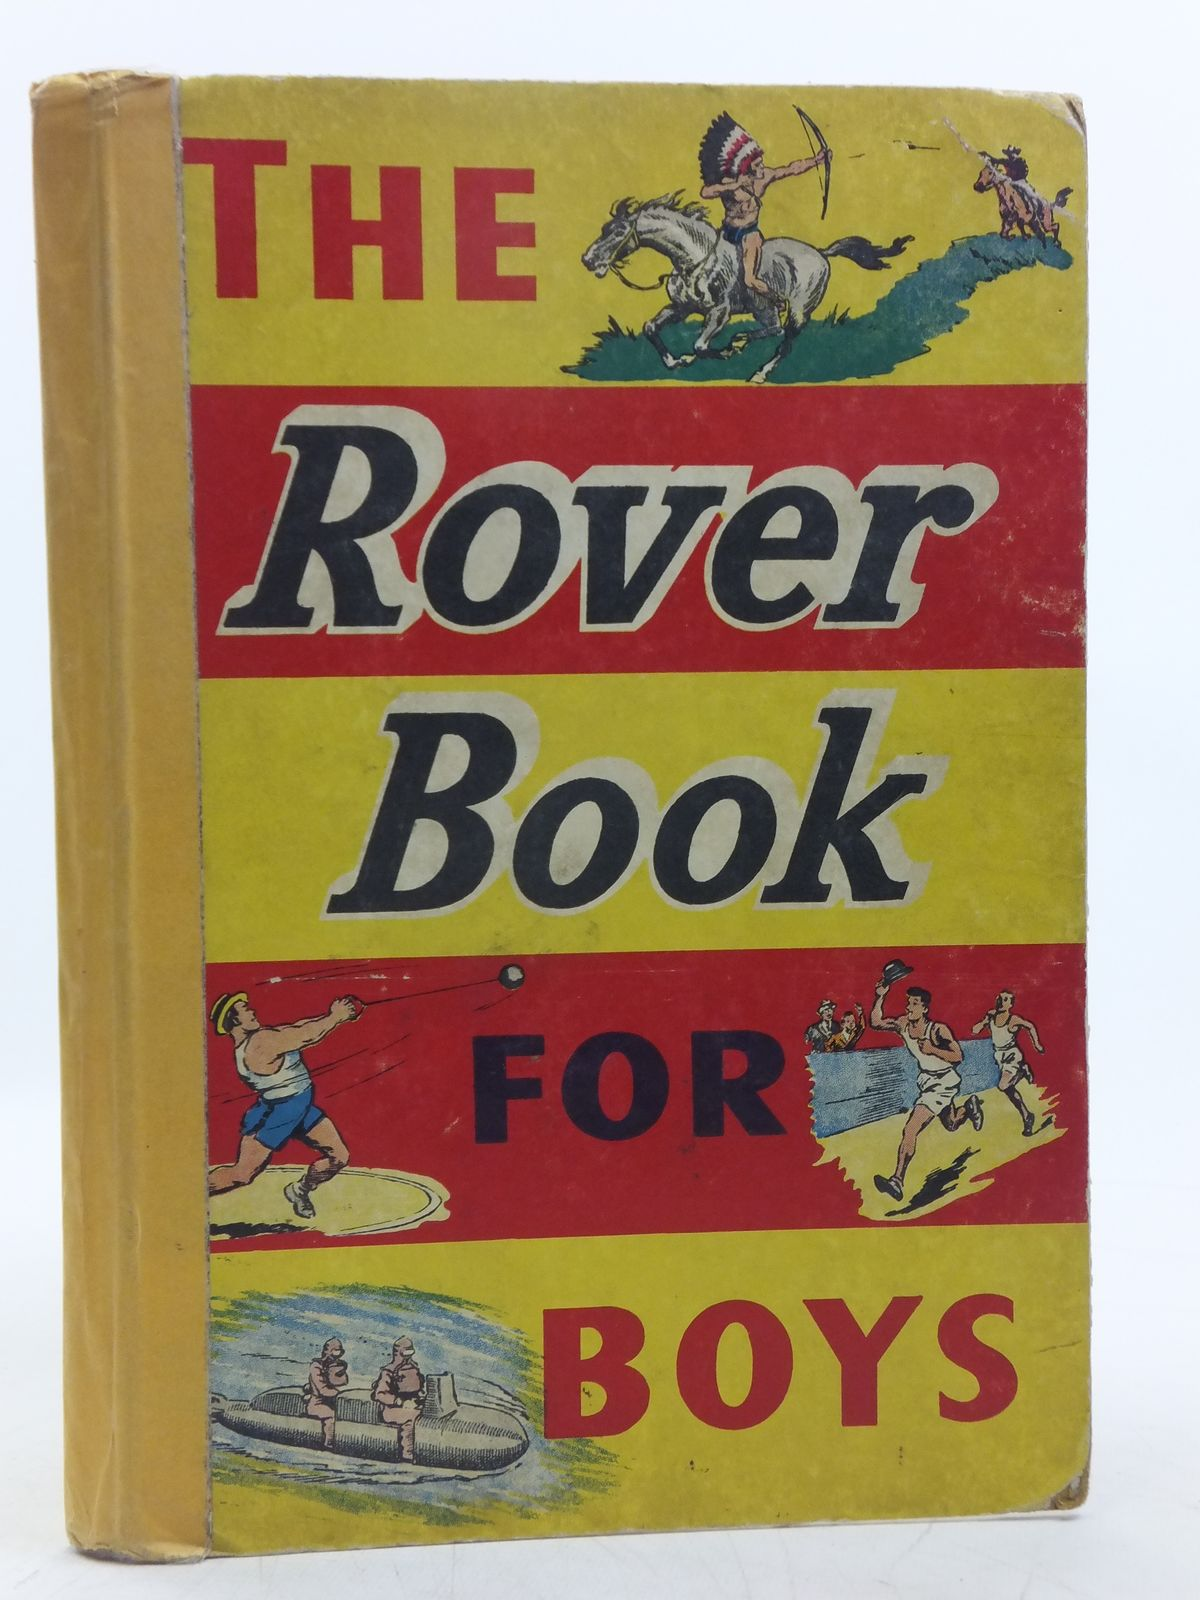 Photo of THE ROVER BOOK FOR BOYS 1958- Stock Number: 2119469